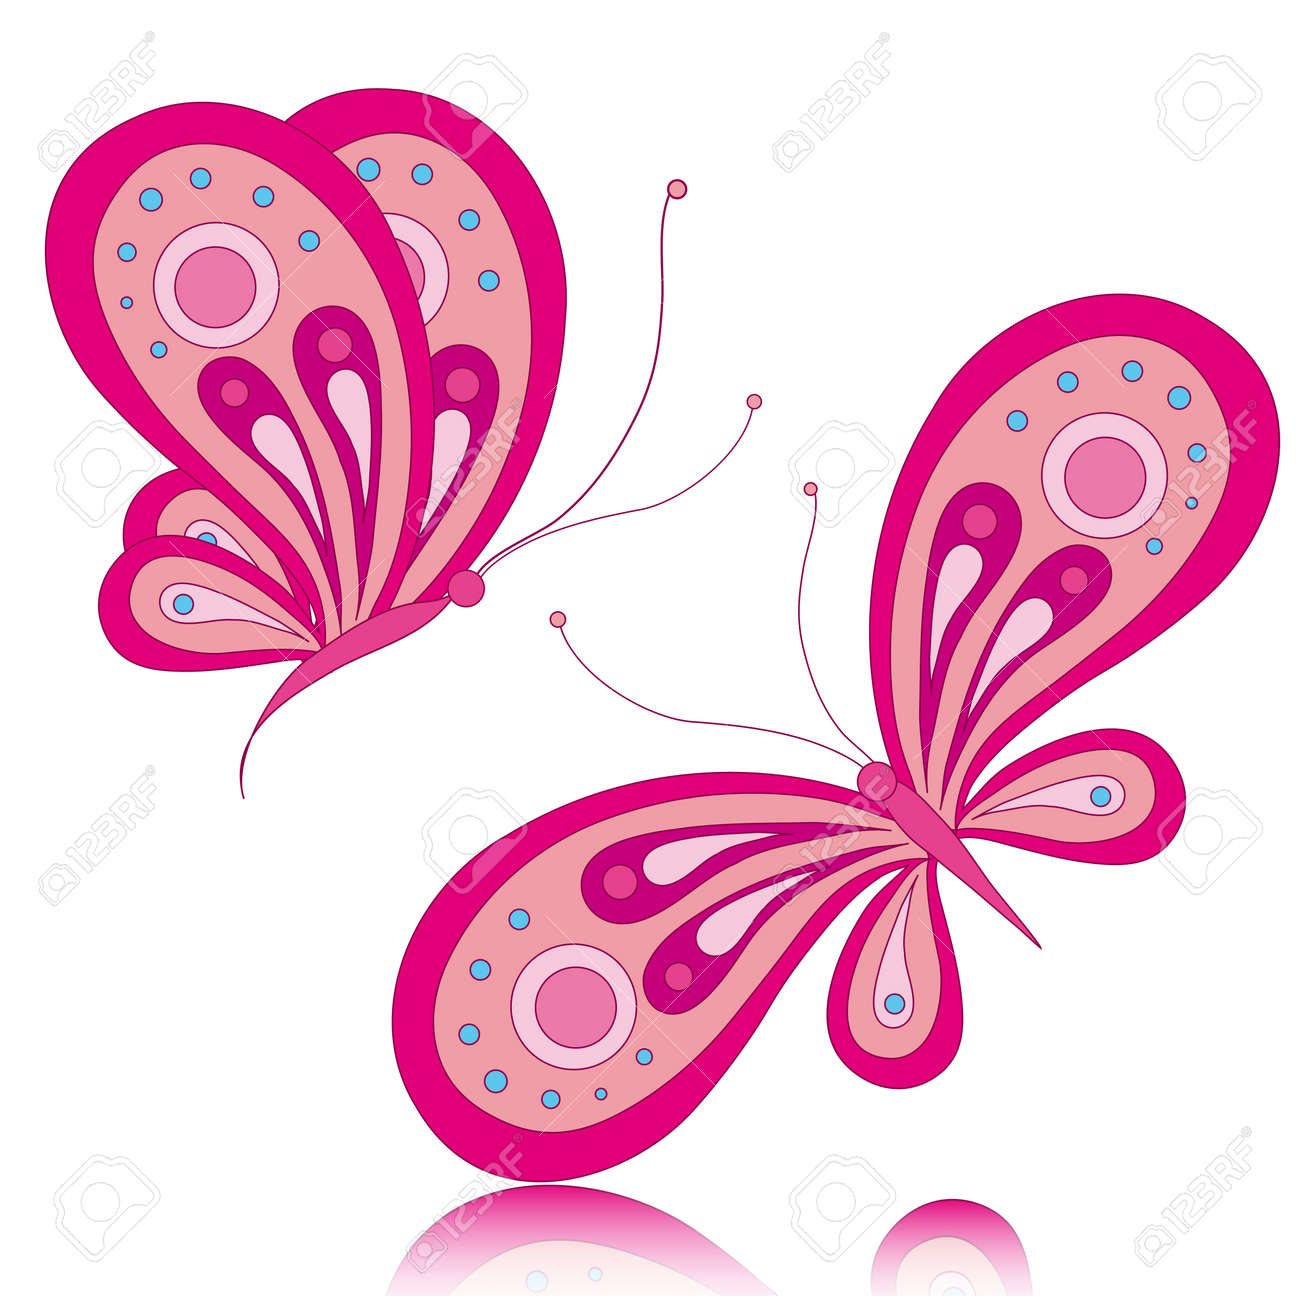 Pink butterfly vector background hd wallpapers pink butterfly vector - Butterfly Butterflies Vector Stock Vector 17303707